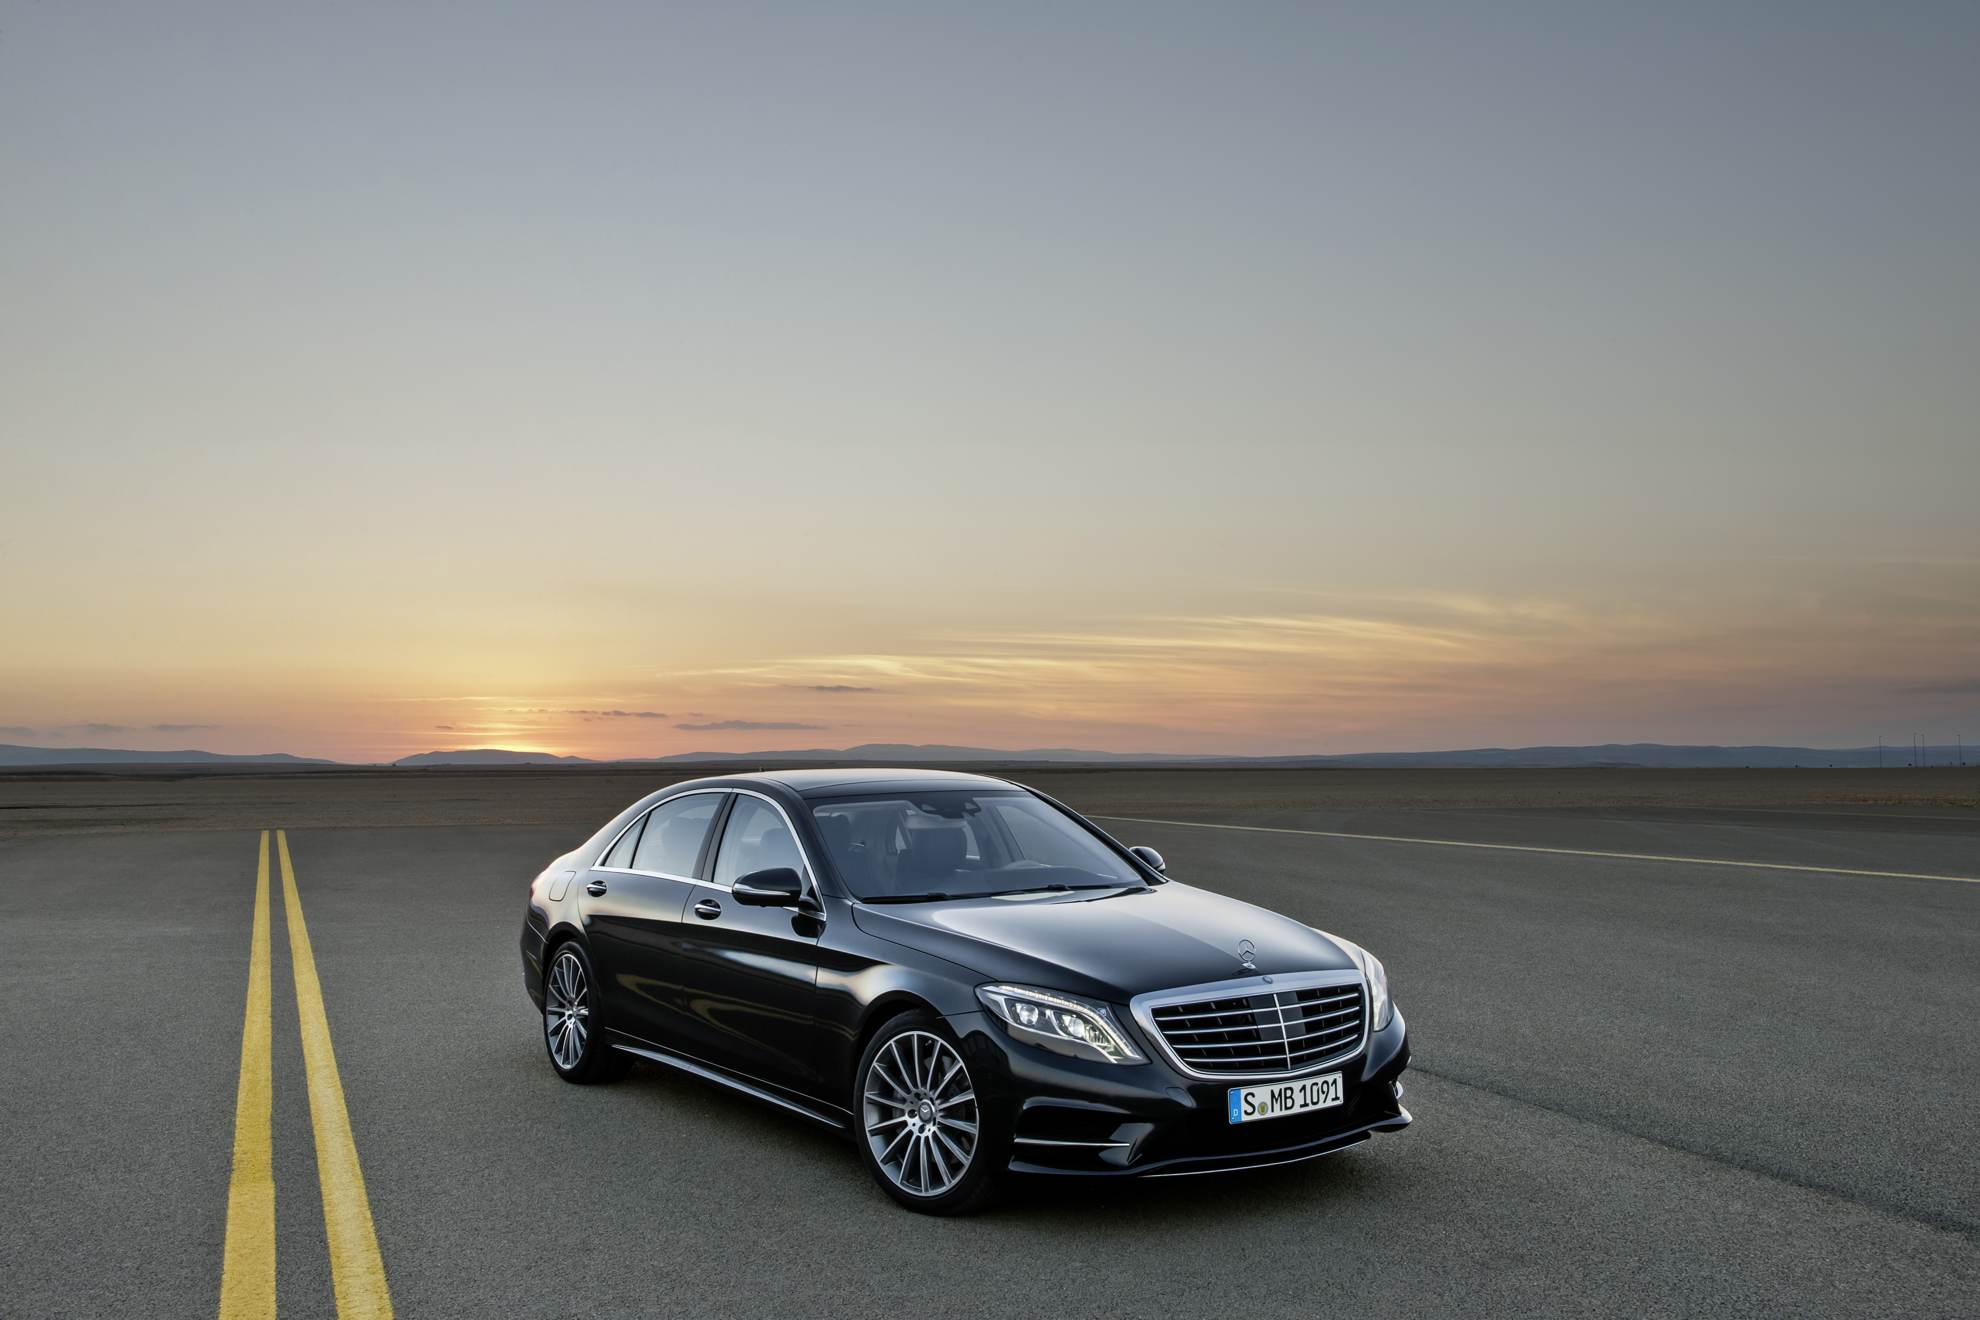 The new mercedes benz s class at uk car dealerships for Mercedes benz car dealership